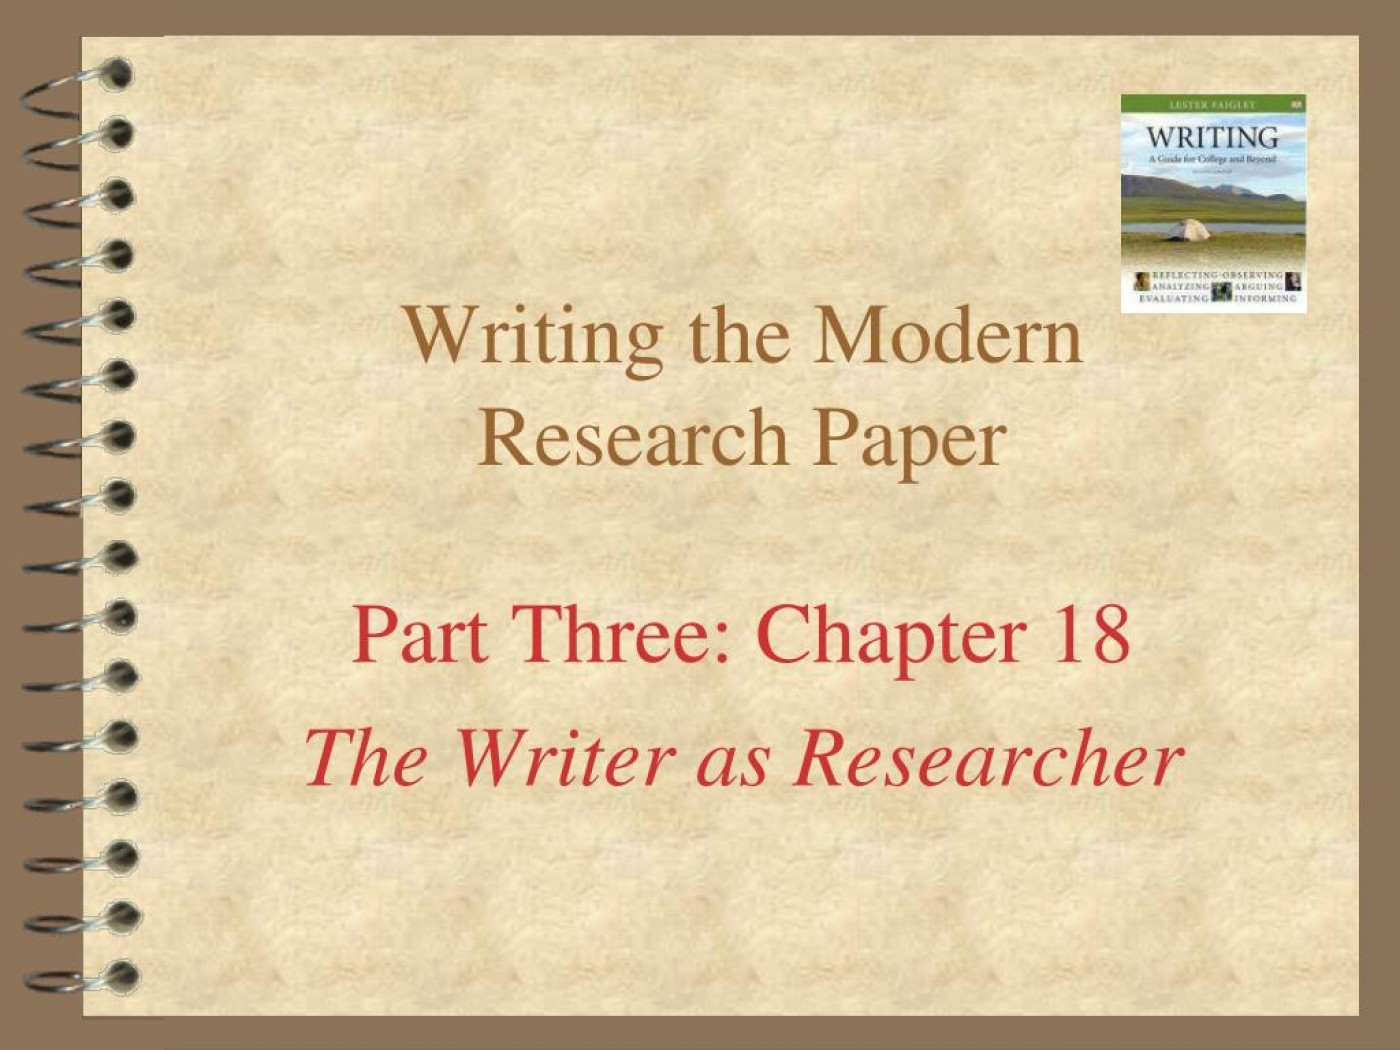 009 Writing The Modern Research Paper L How To Write Powerpoint Awesome A Presentation 1400